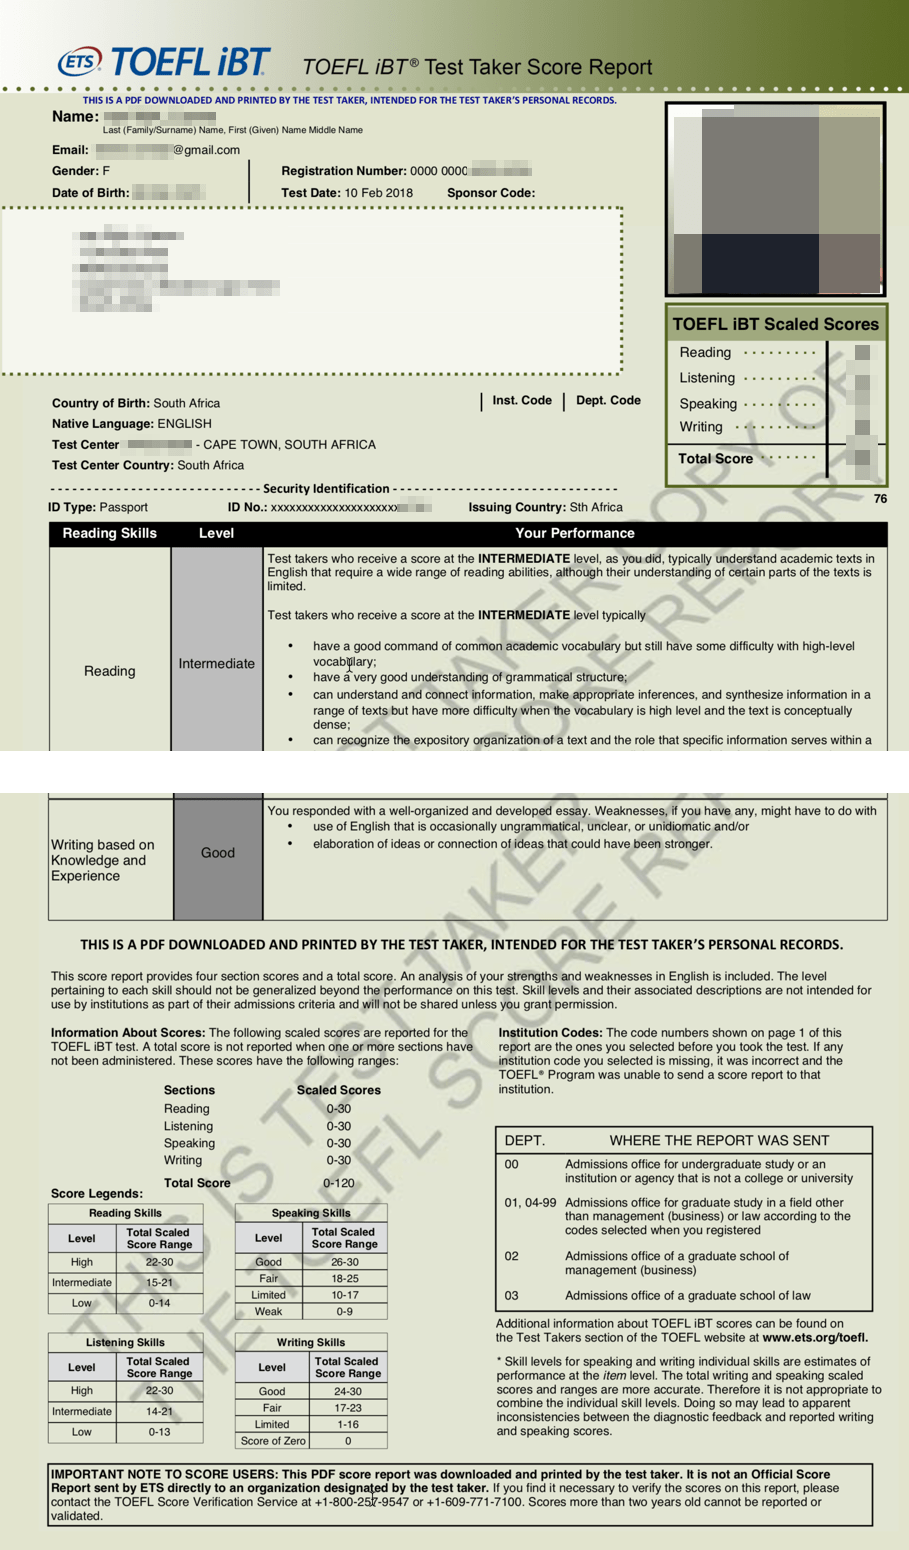 TOEFL Test Results - Will it be accepted - General Discussion on Immigration - SAAustralia Forums